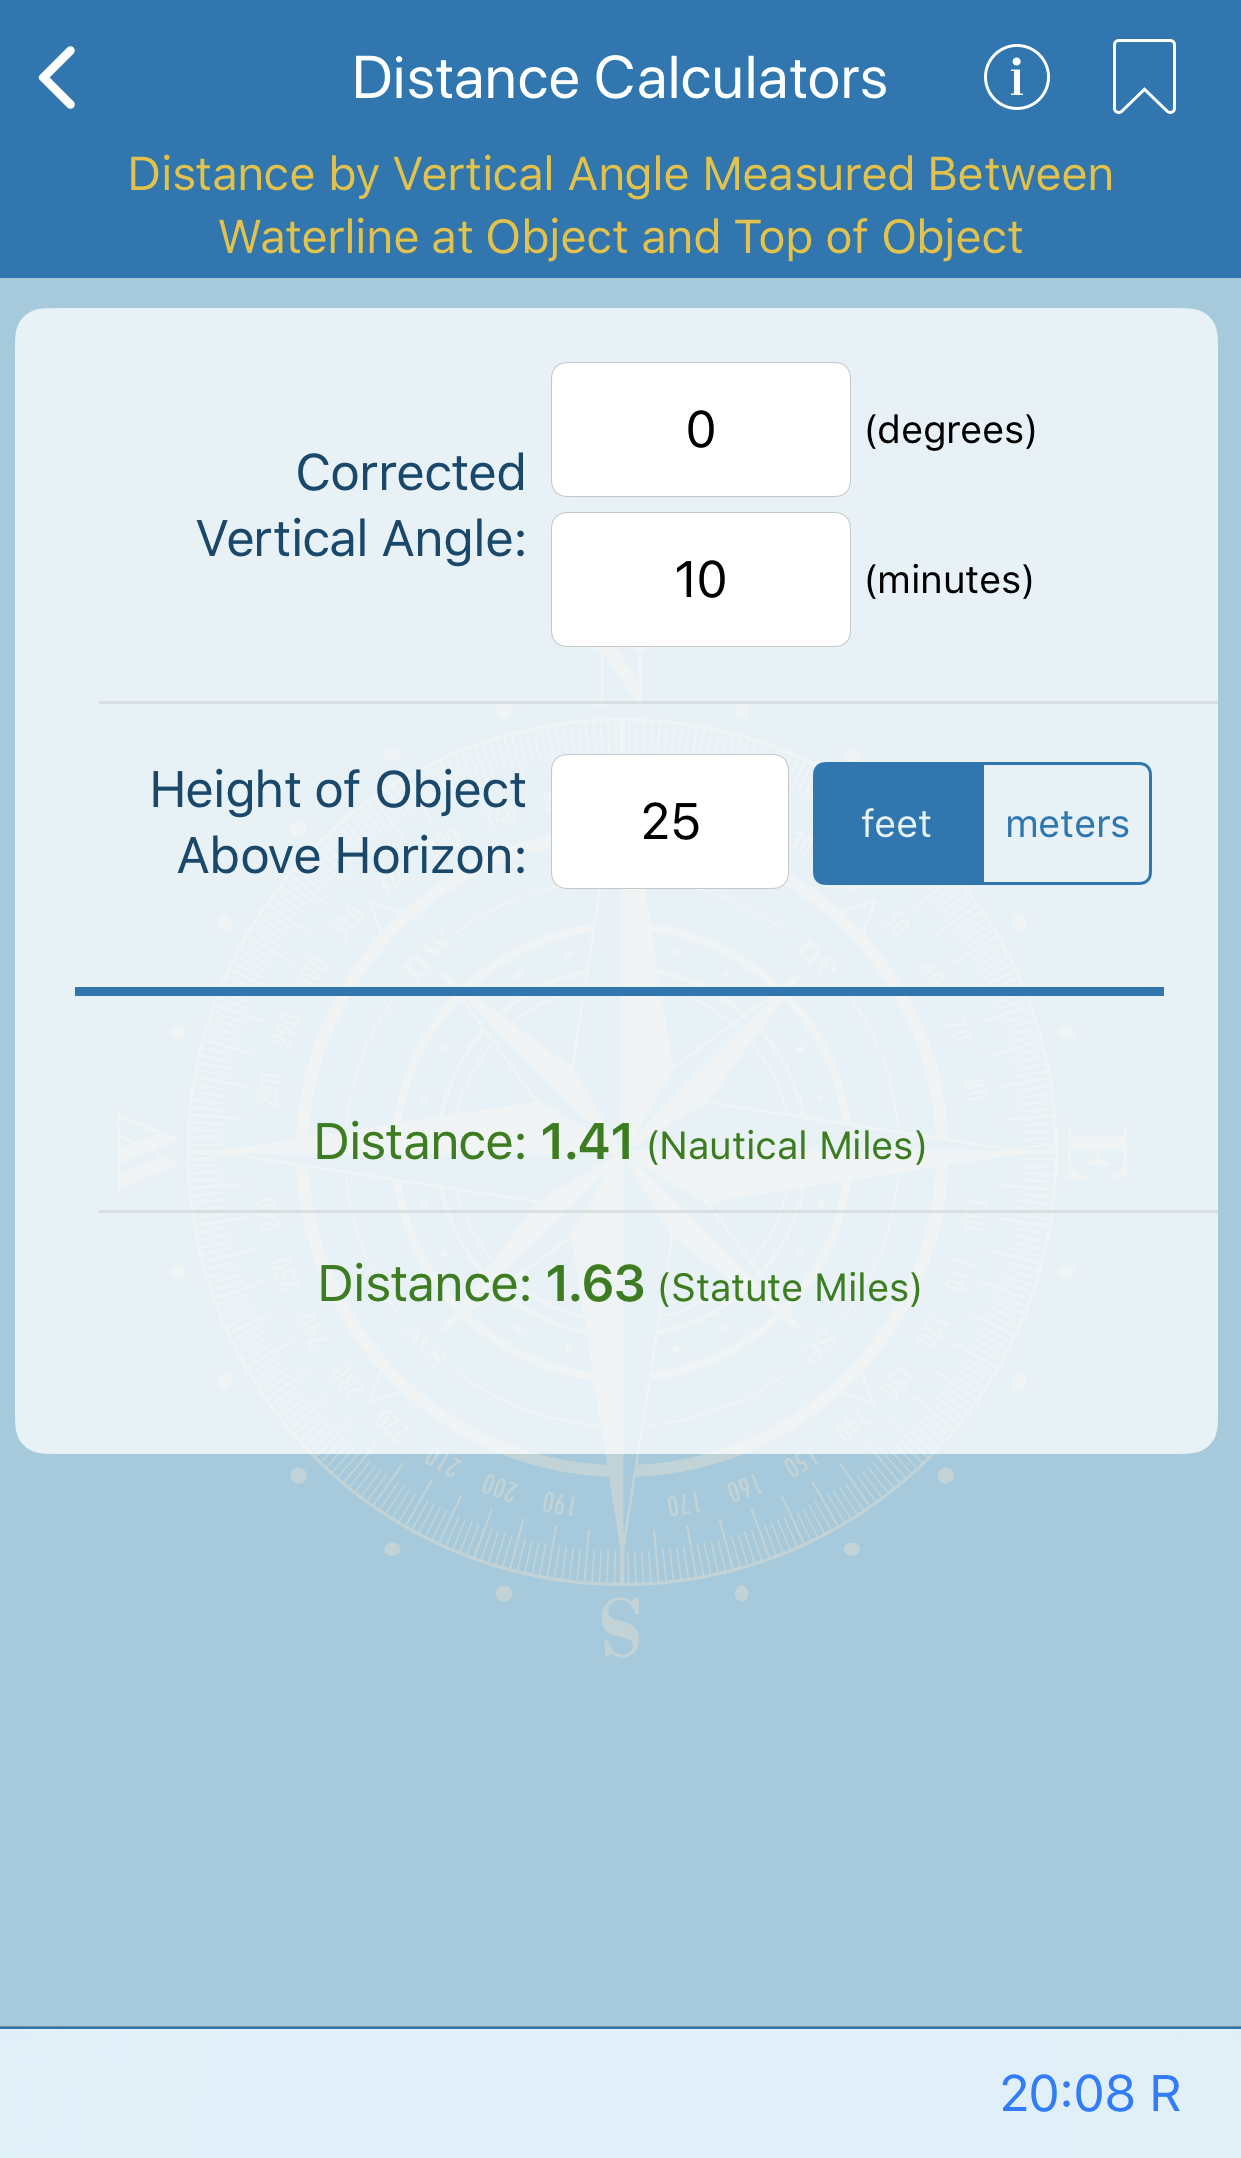 Distance by Vertical Angle Measured Between Waterline at Object and Top of Object